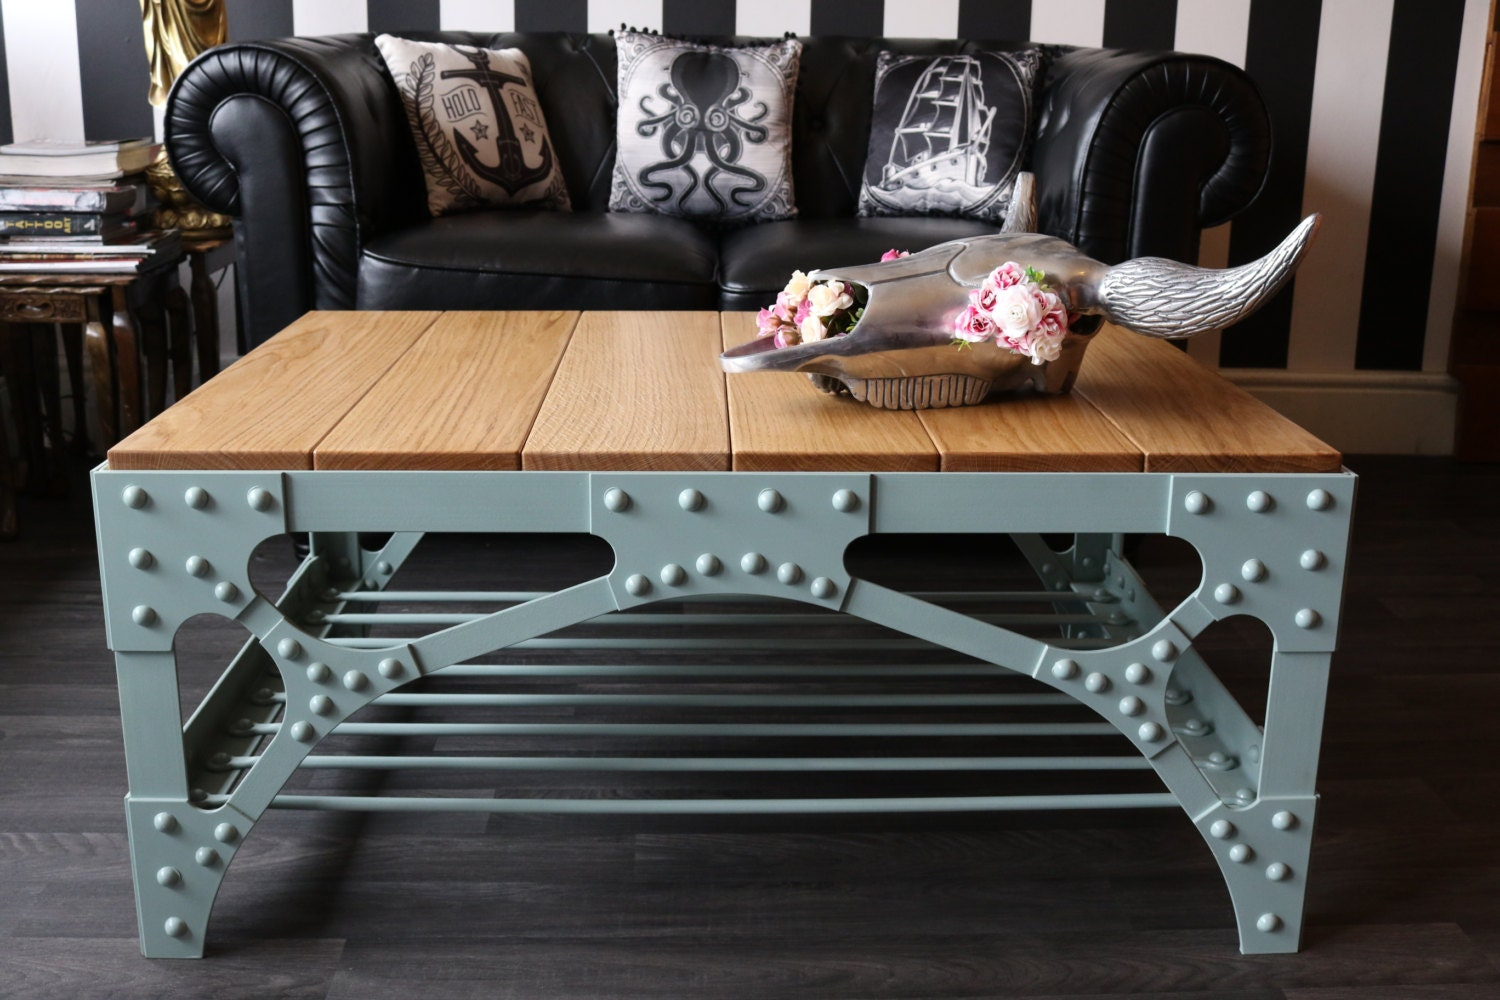 Industrial Coffee Table  Deluxe industrial steampunk style riveted bridge coffee table  The Harbour Bridge Coffee Table